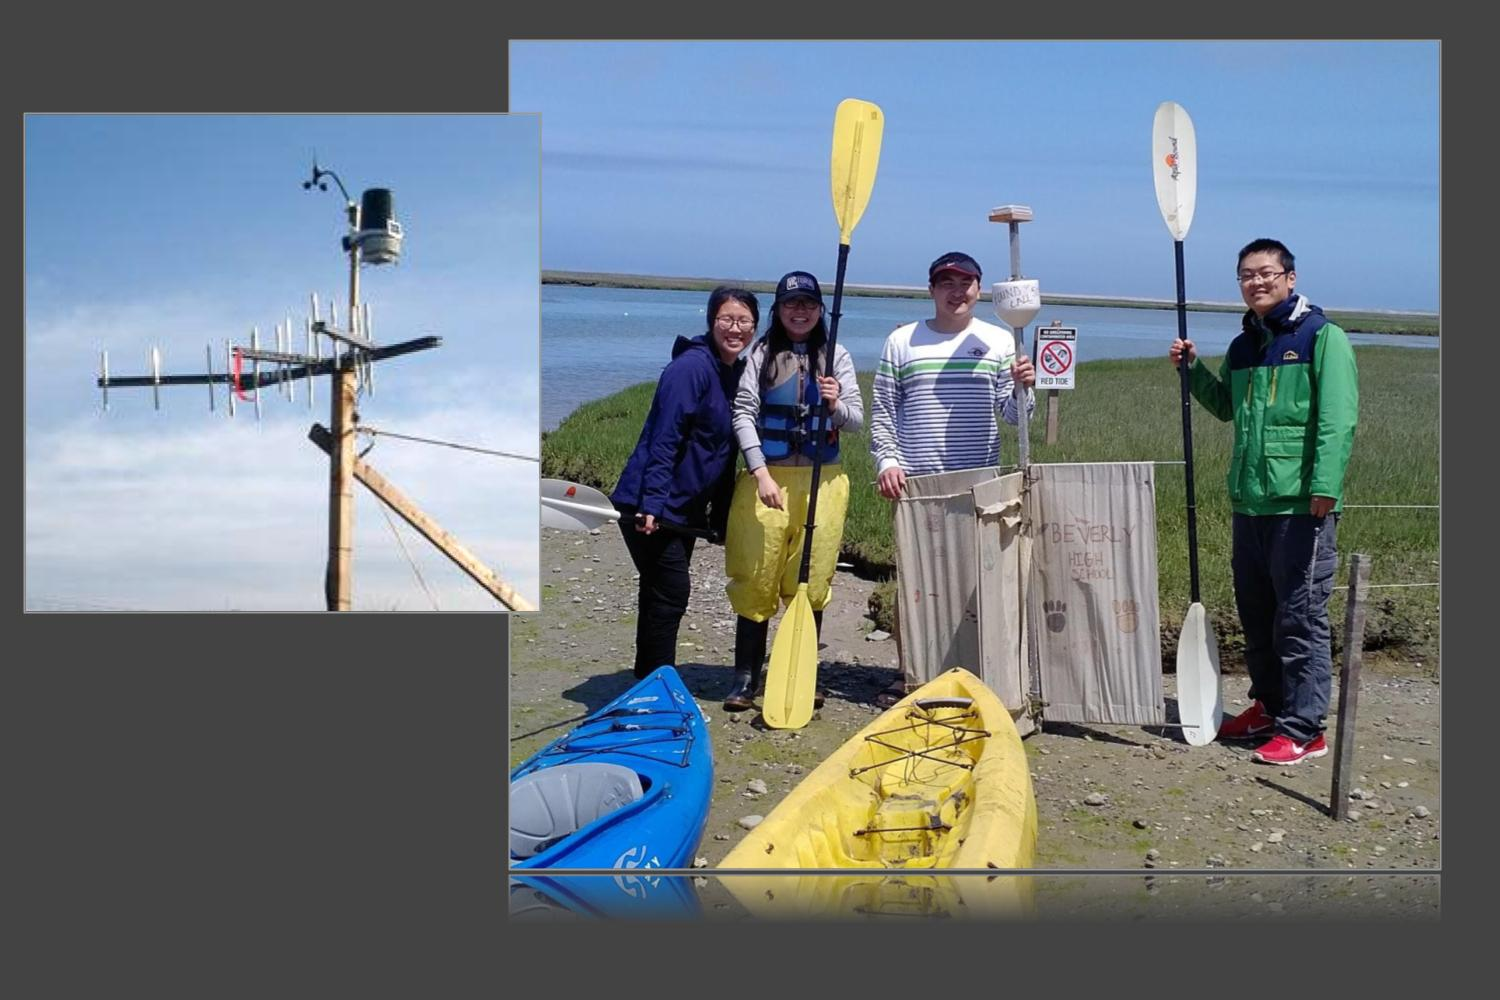 Image shows two panels side by side. The first panel shows a radar antenna. The second panel shows four people standing on the shore at the side of a GPS-enabled current drifter. One person is holding the drifter and two people are holding kayak oars.